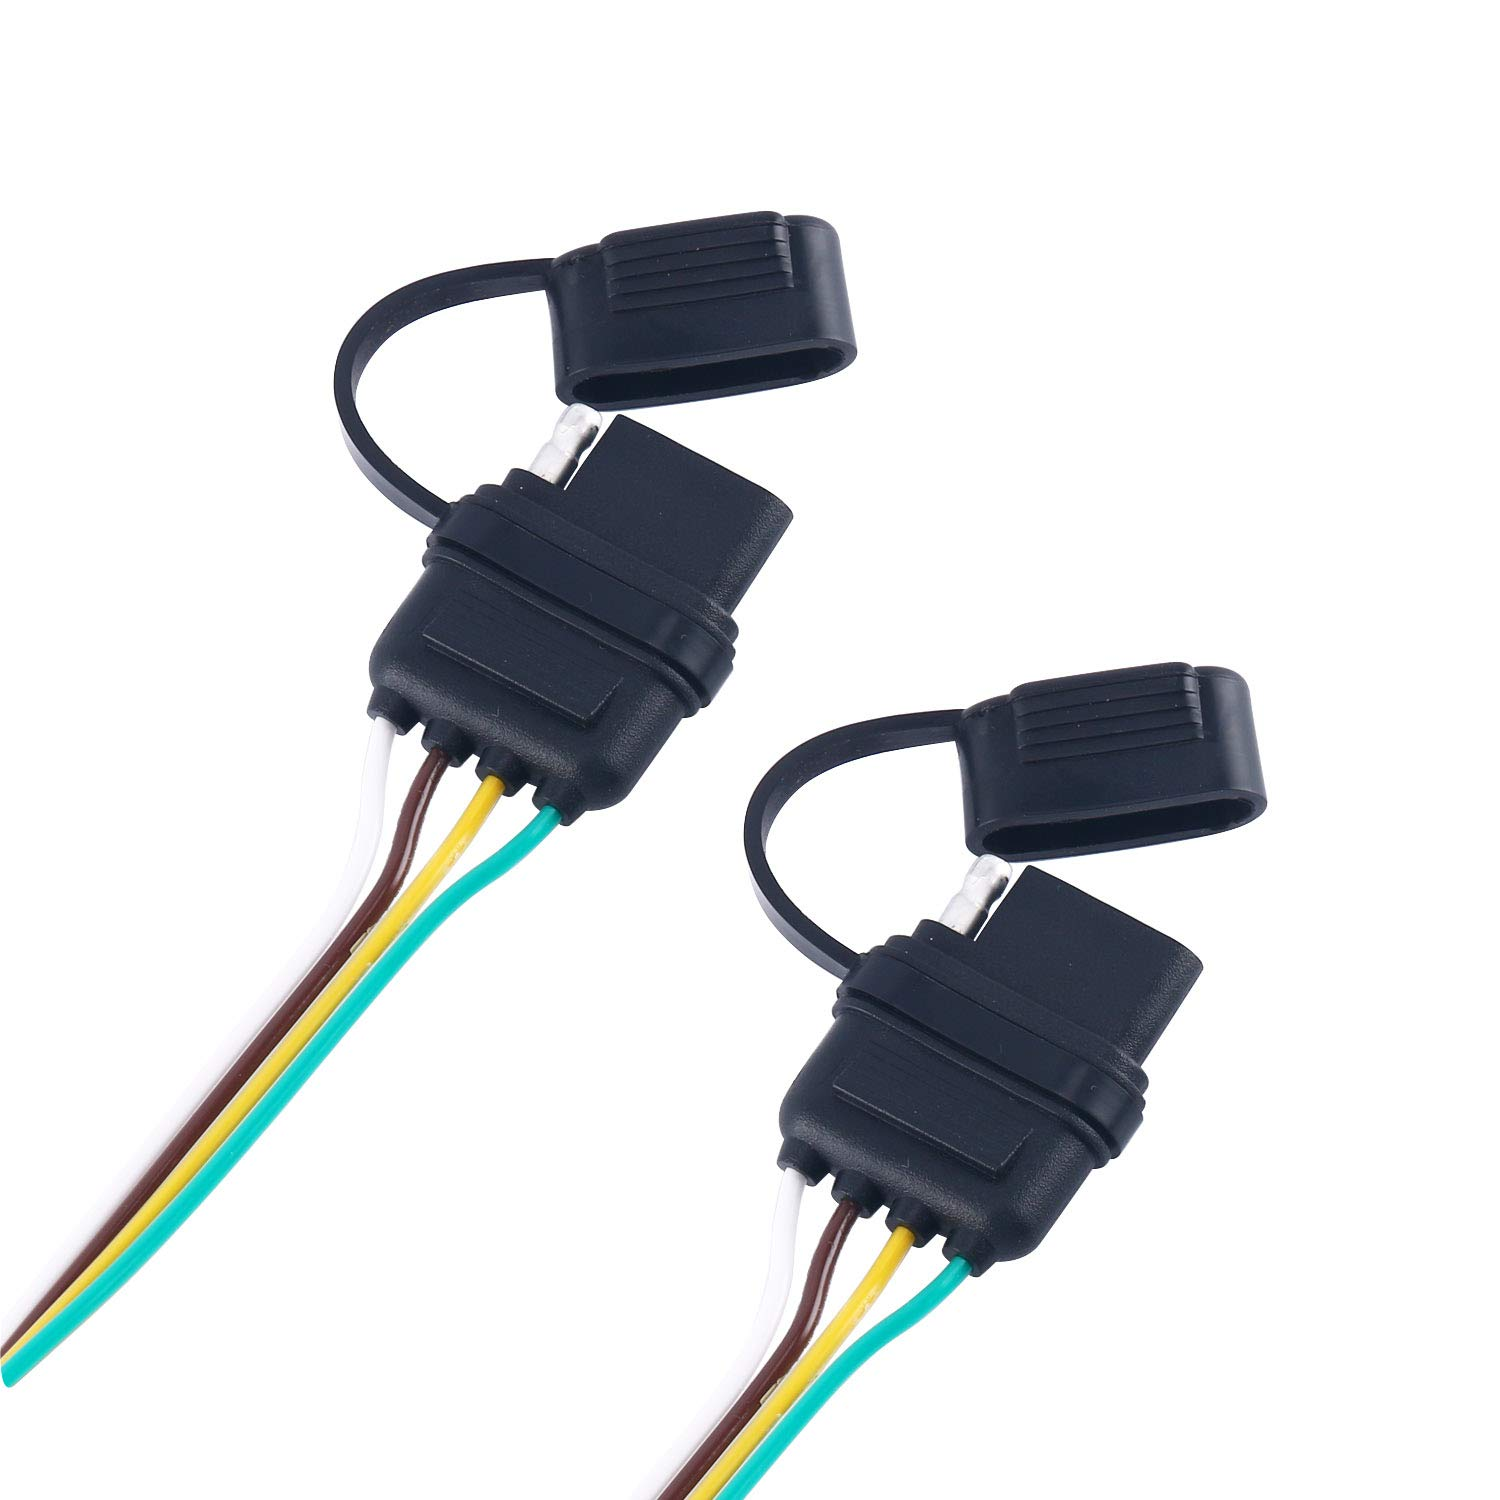 Yaekoo 4 Way Y Splitter Flat Trailer Wire Harness Extension Lights Connector Plug For Led Tailgate Light